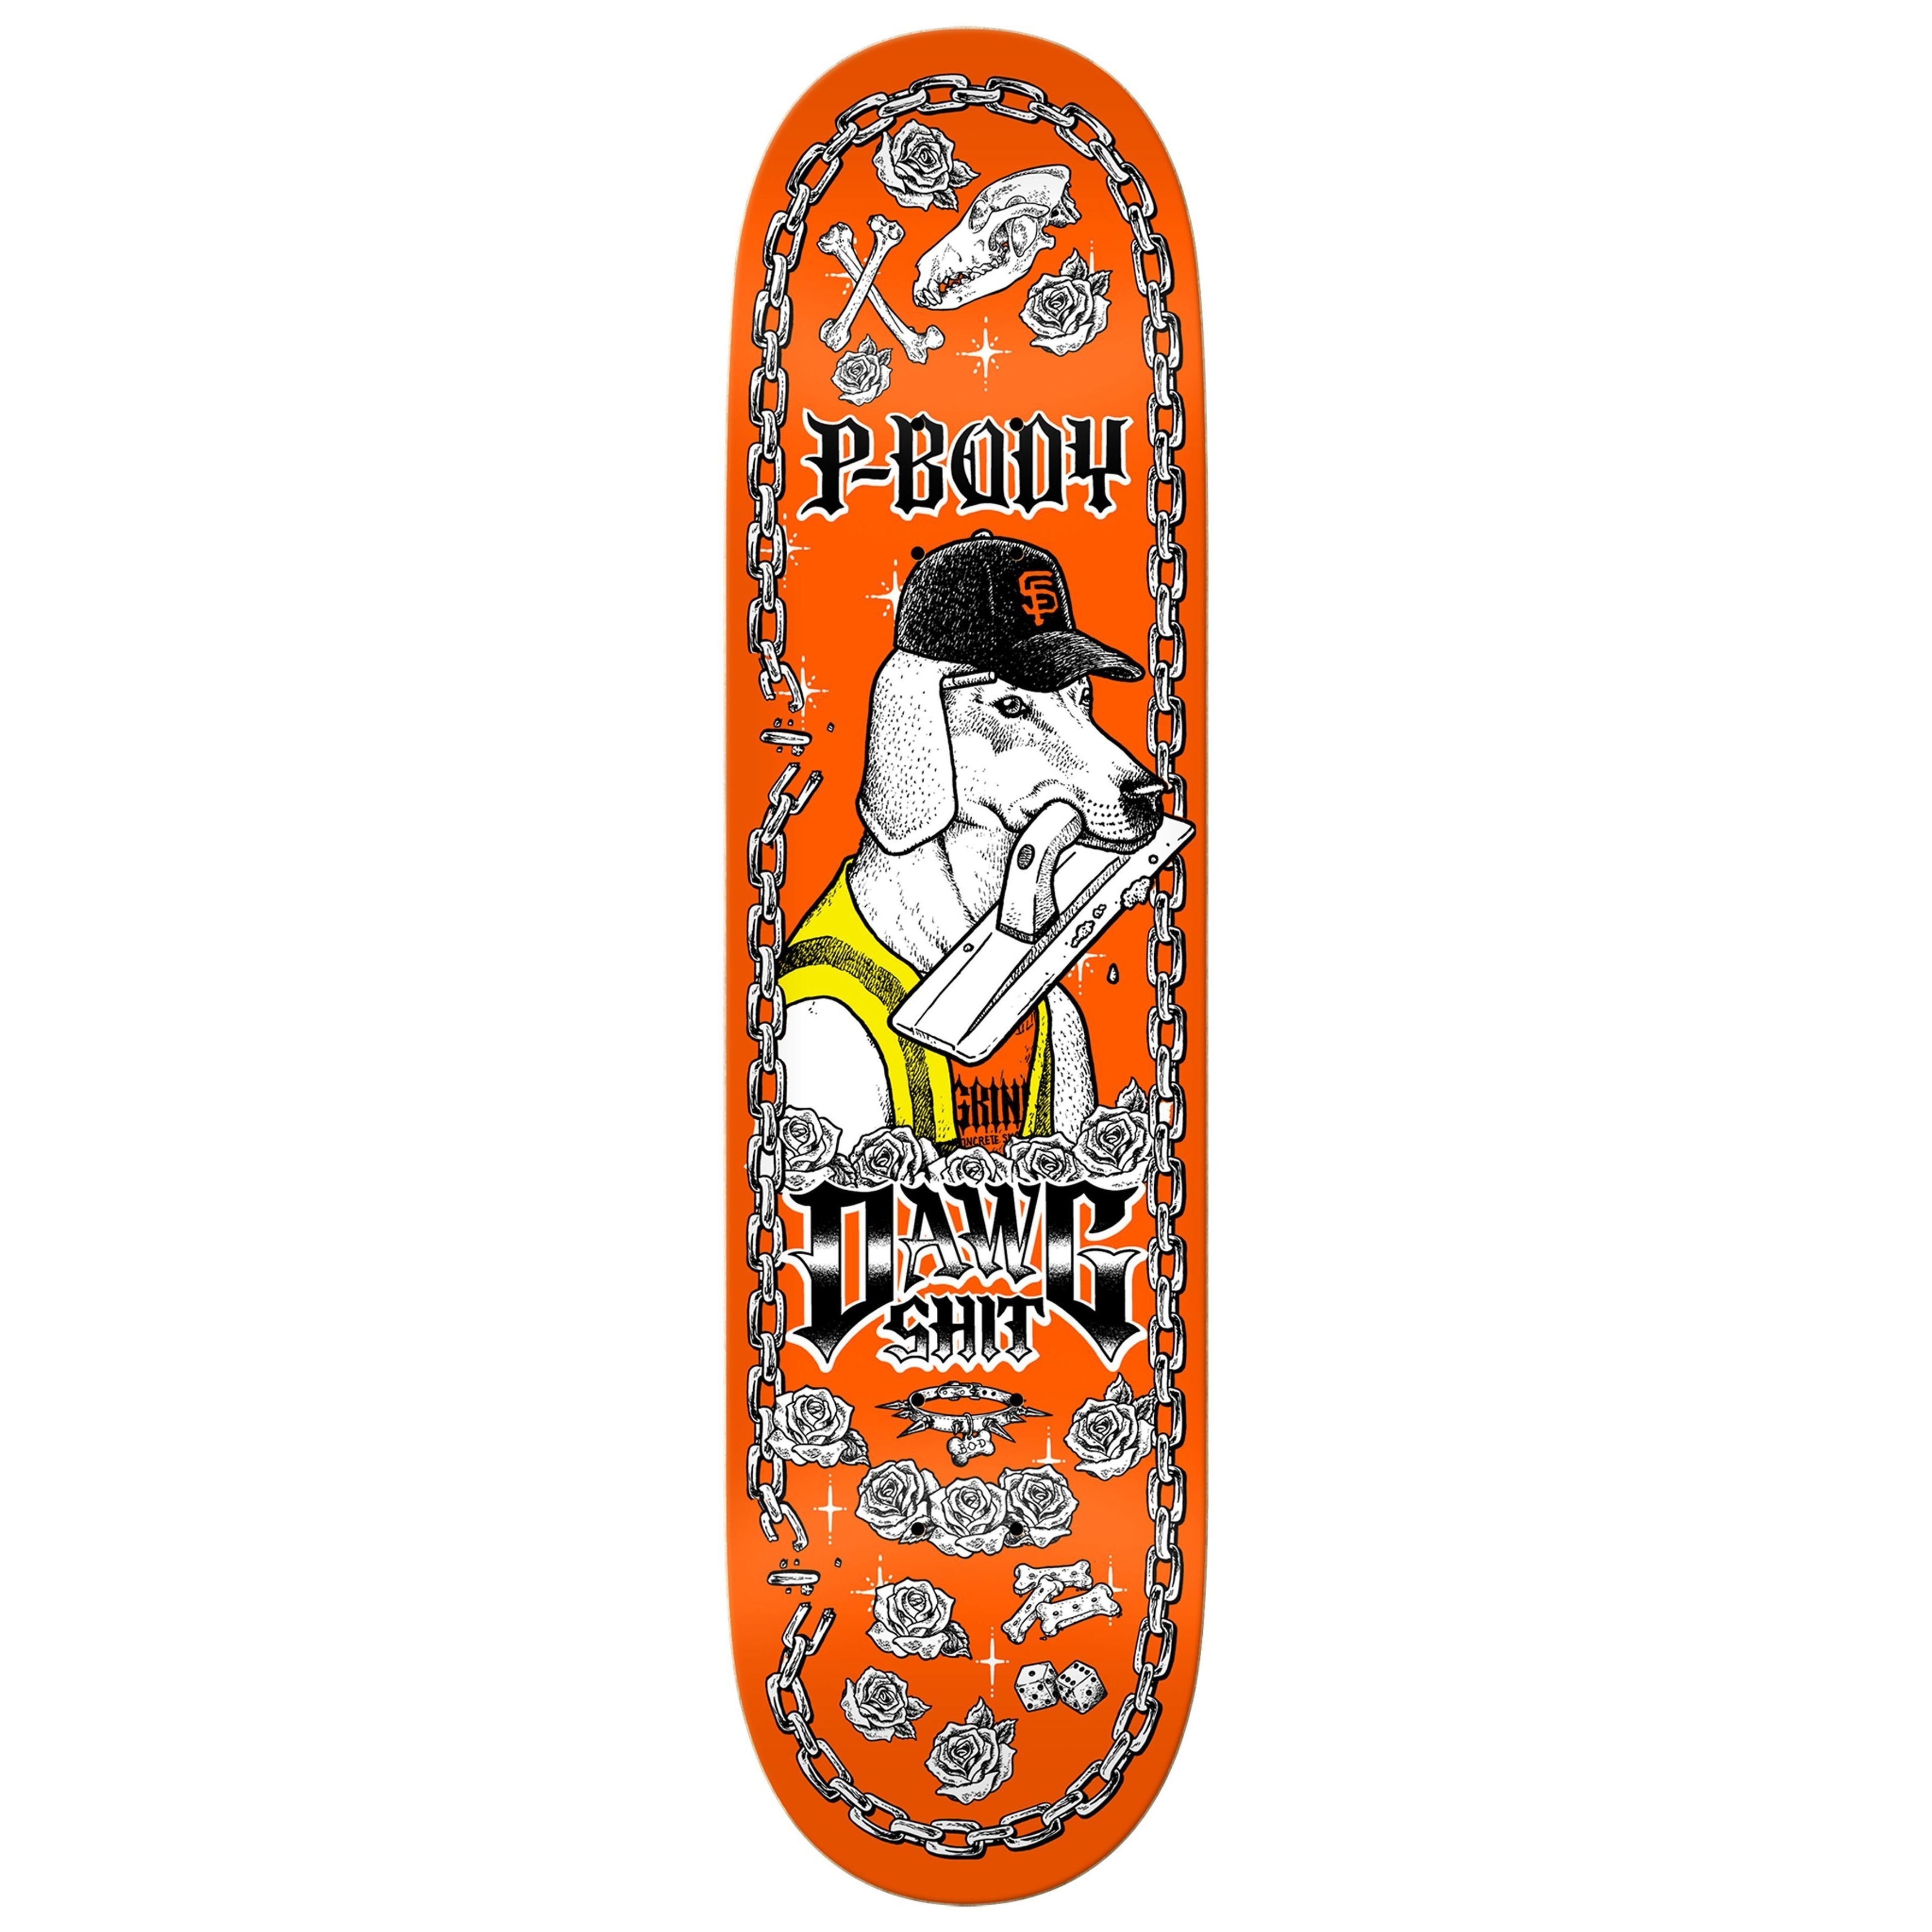 Spring 2019 P Body Dawgshit Deck